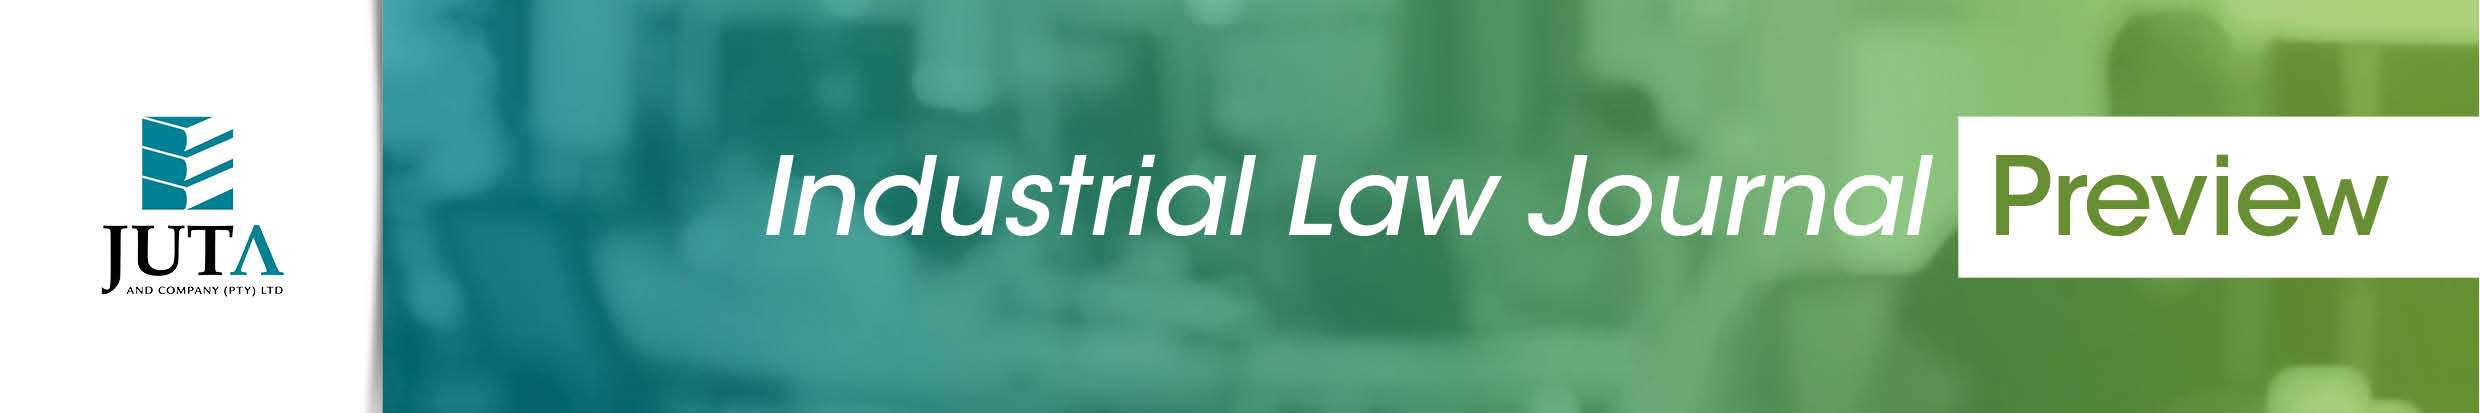 Industrial Law Journal Preview